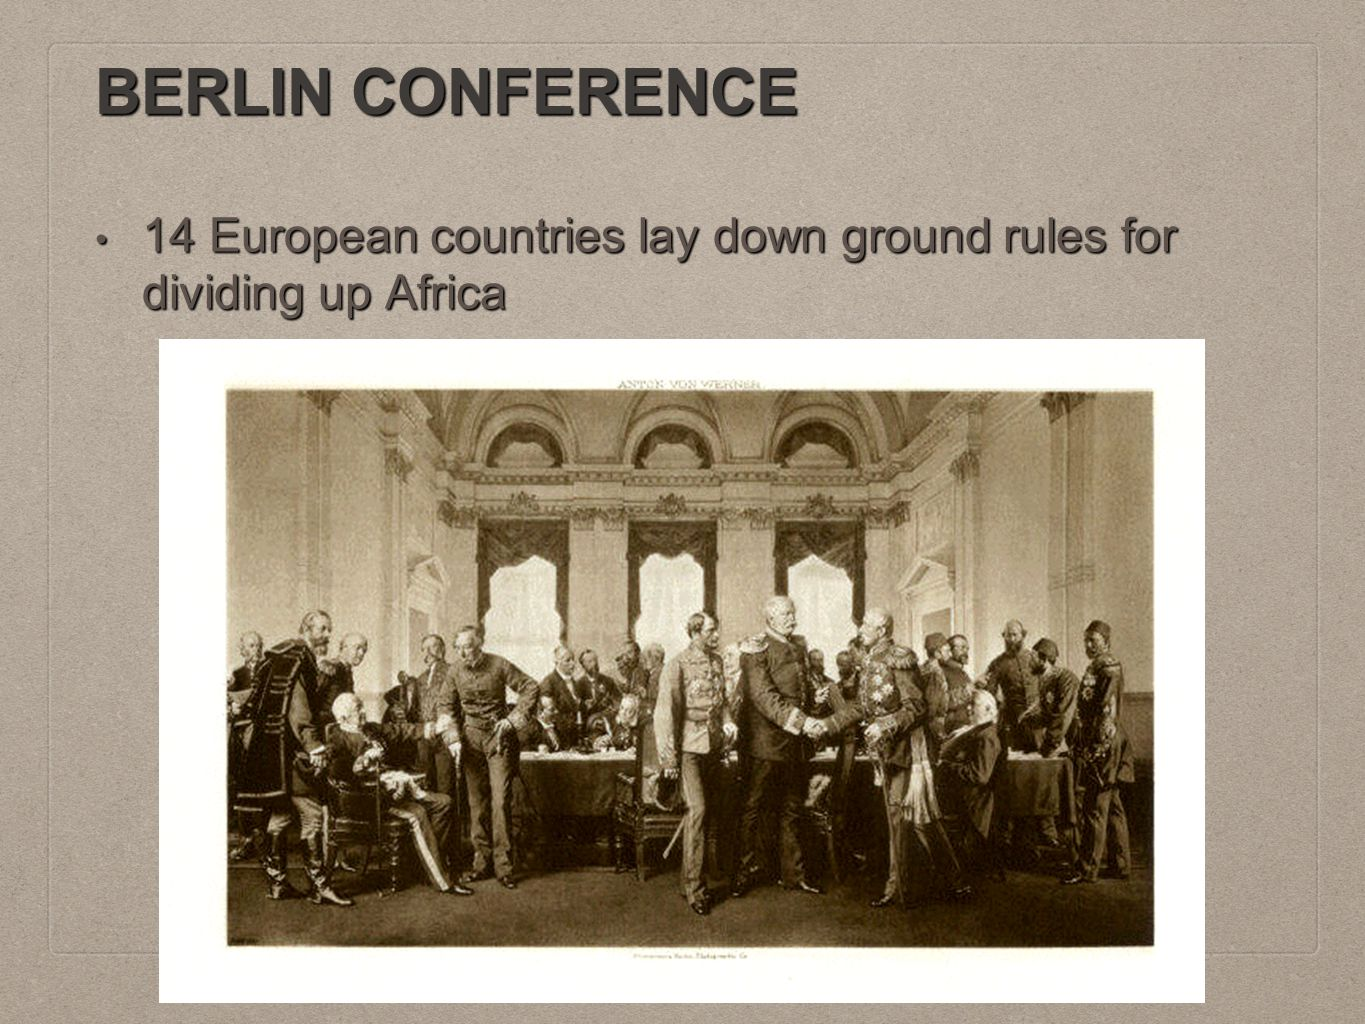 BERLIN CONFERENCE 14 European countries lay down ground rules for dividing up Africa